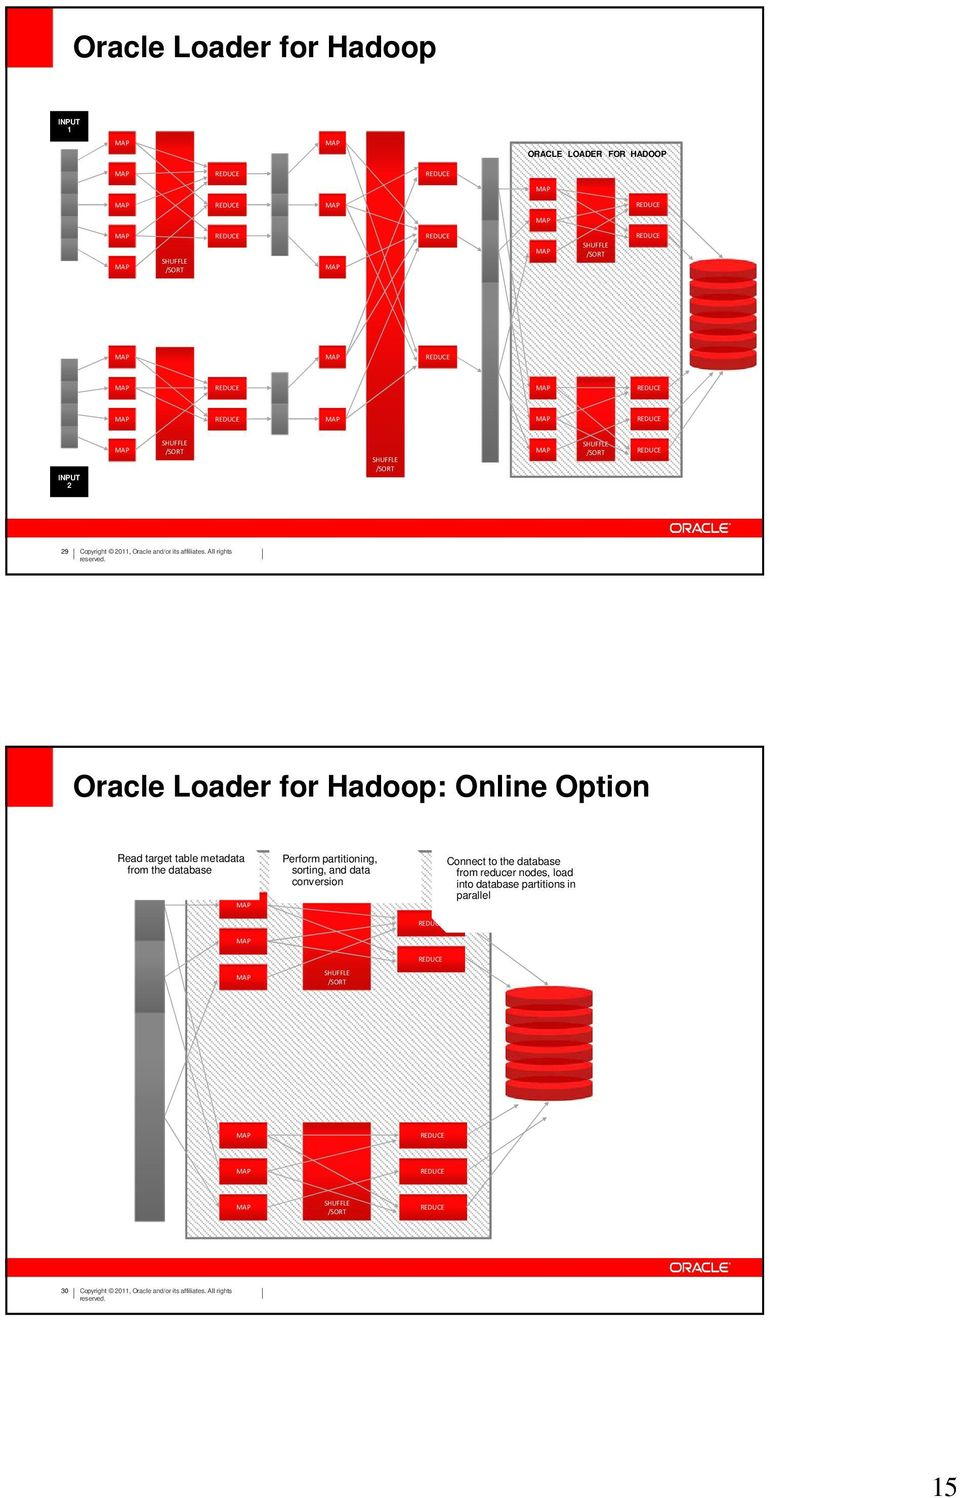 Loader for Hadoop: Online Option Read target table metadata from the database Perform partitioning, ORACLE LOADER FOR HADOOP